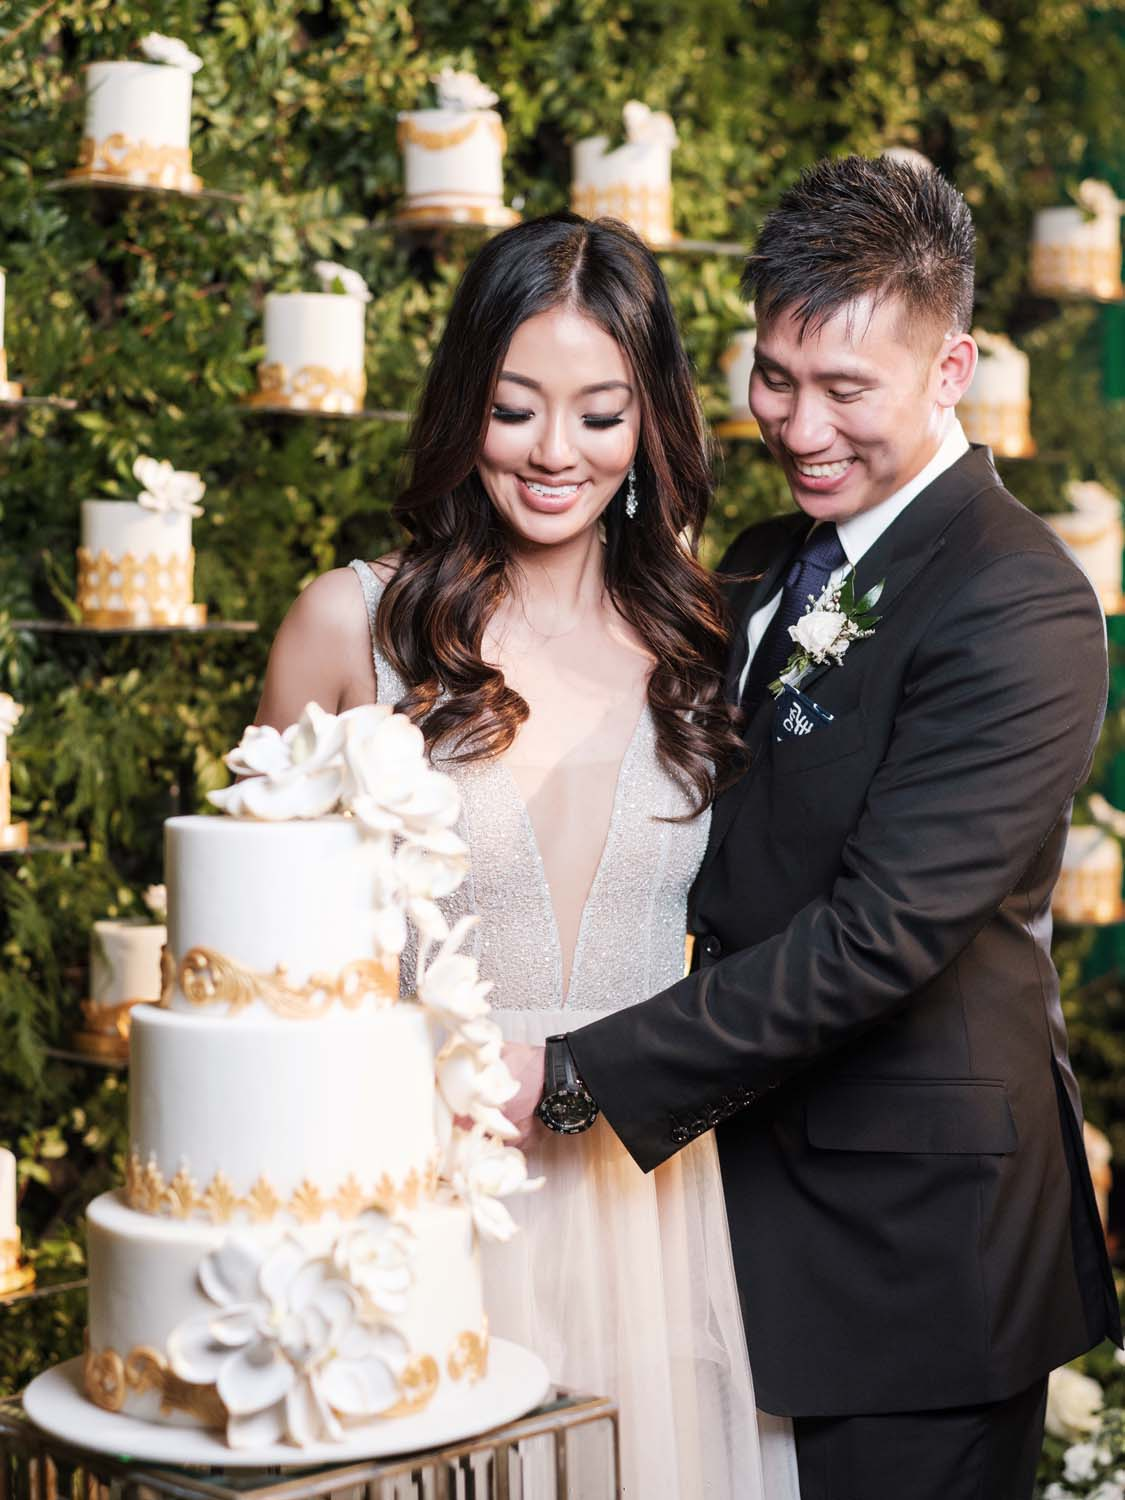 The bride and groom cut the cake surrounded by individual mini wedding cakes. Luxury Las Vegas Wedding Planner Andrea Eppolito. www.andreaeppolitoevents.com. Photo by Rene Zadori.